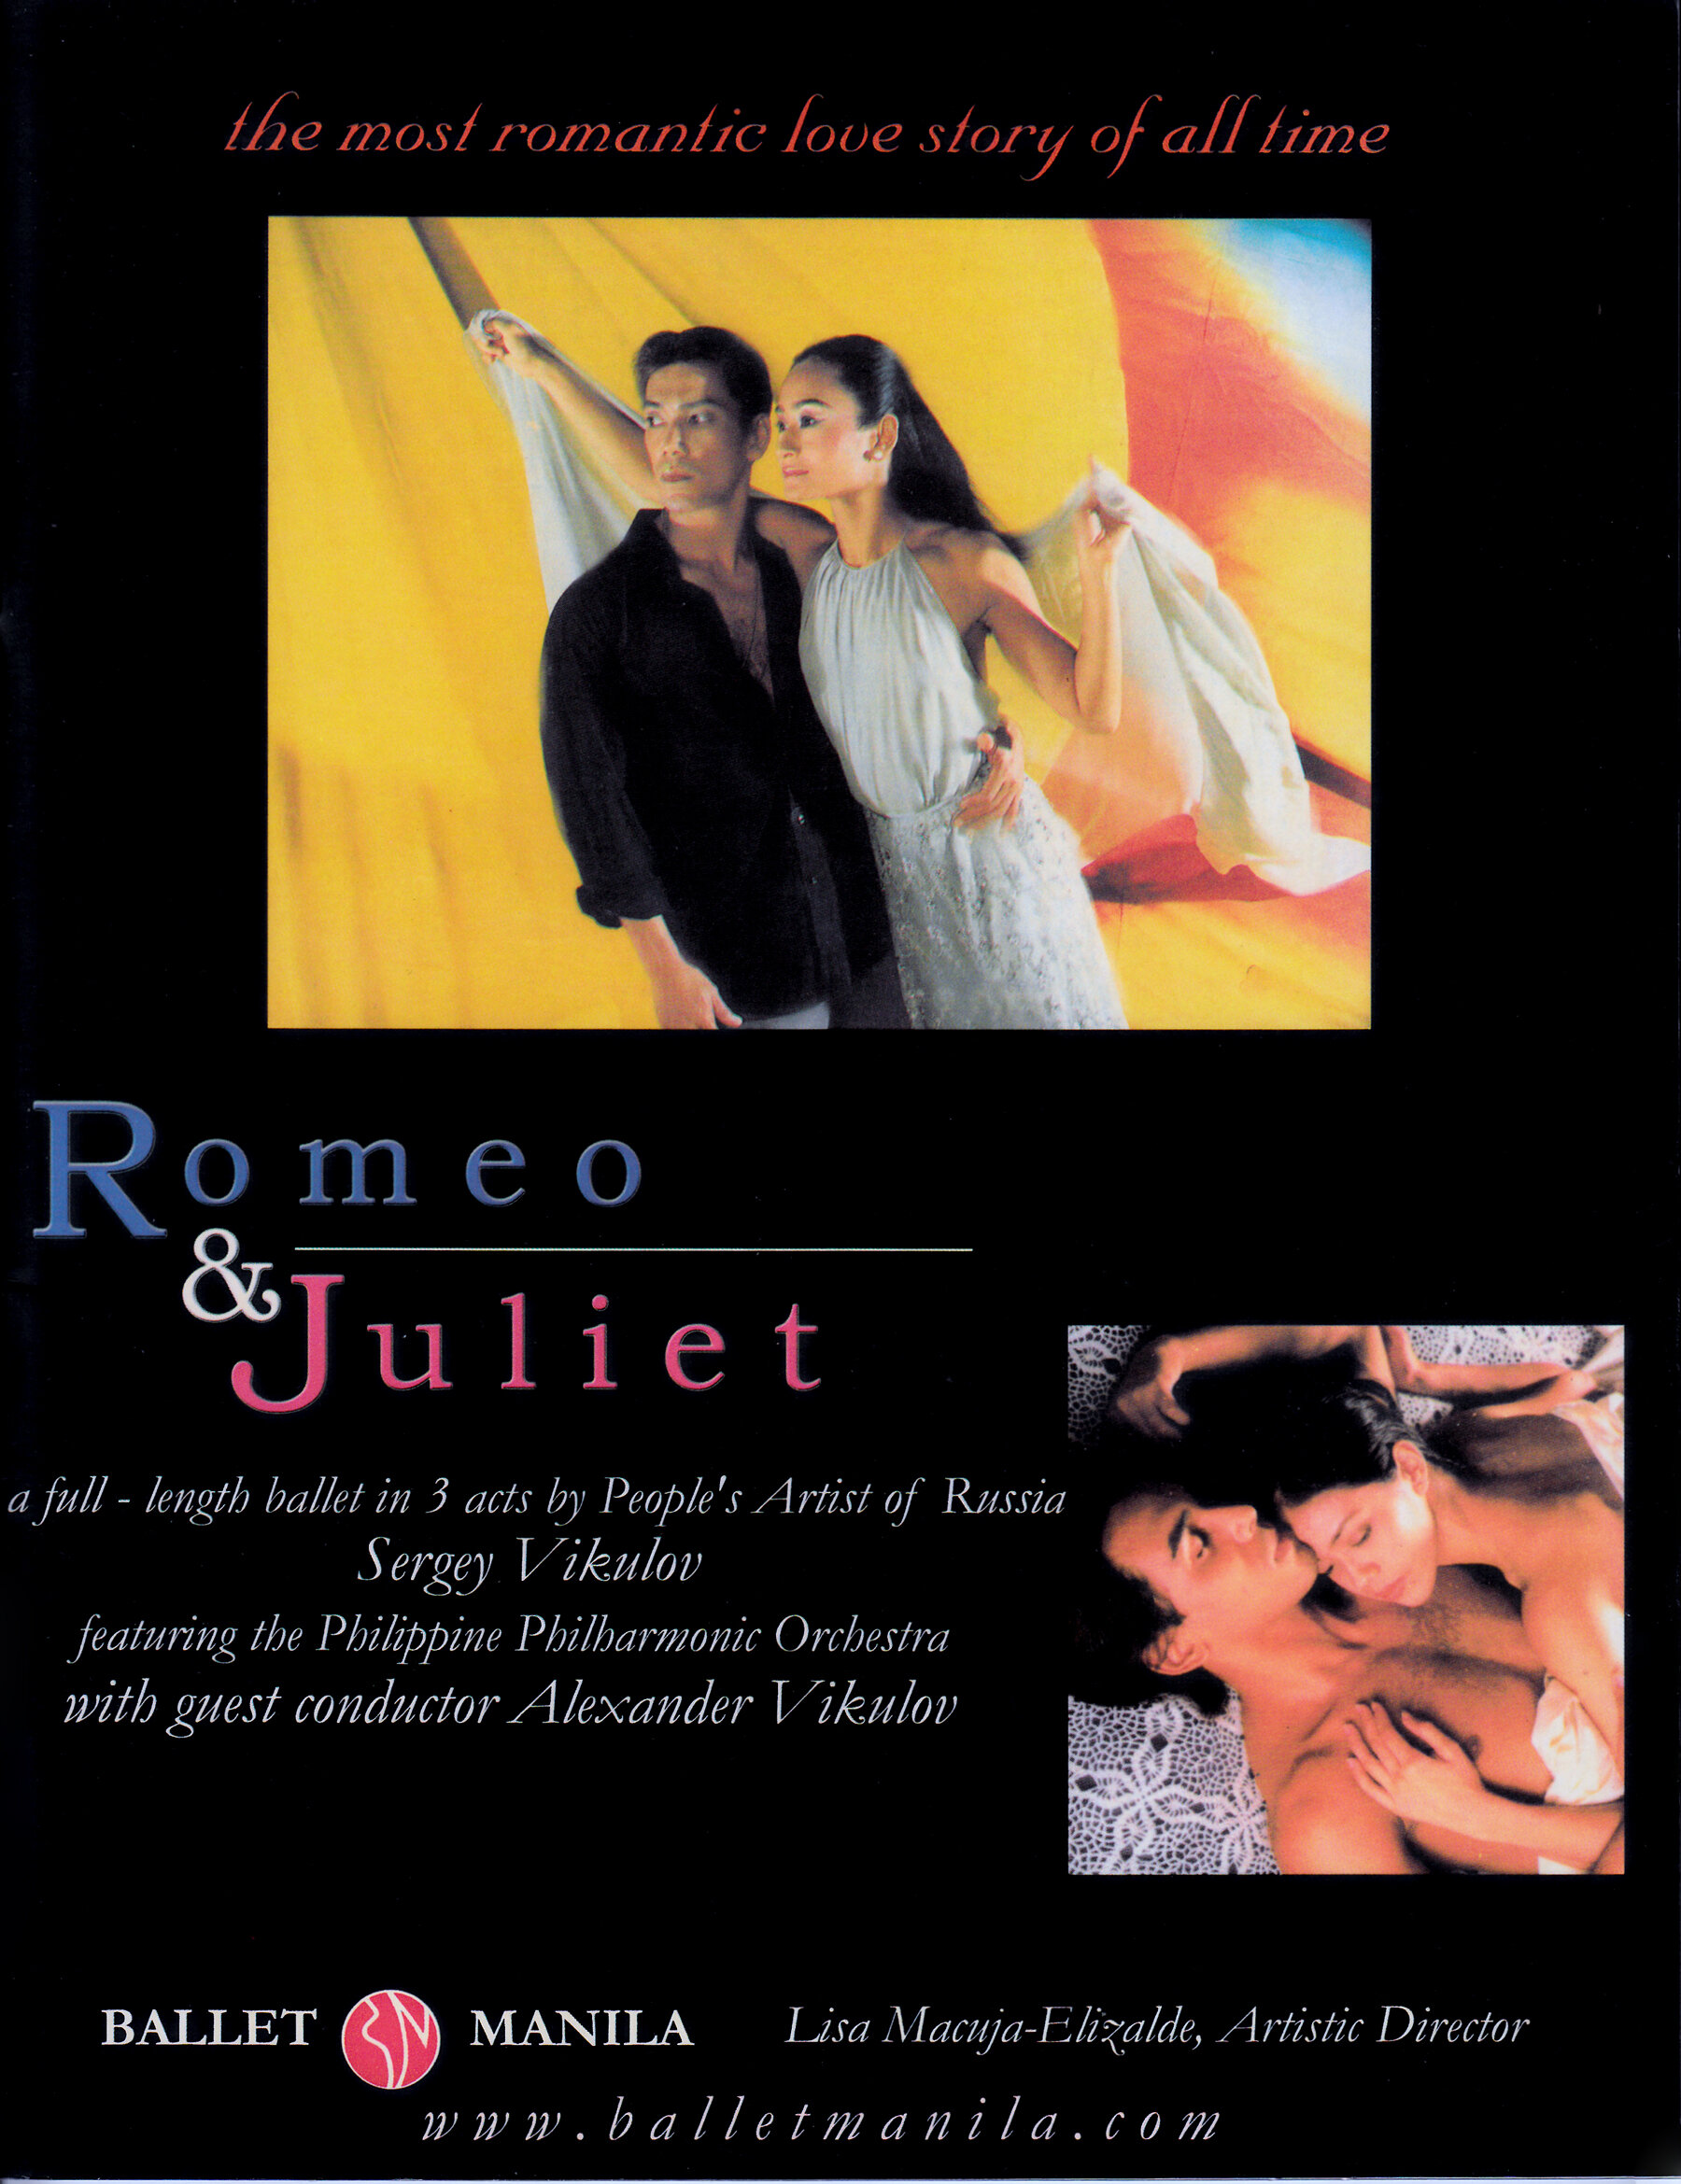 Souvenir program of the three-act  Romeo and Juliet  that People's Artist of Russia Sergey Vikulov choreographed for Ballet Manila. From the Ballet Manila Archives collection